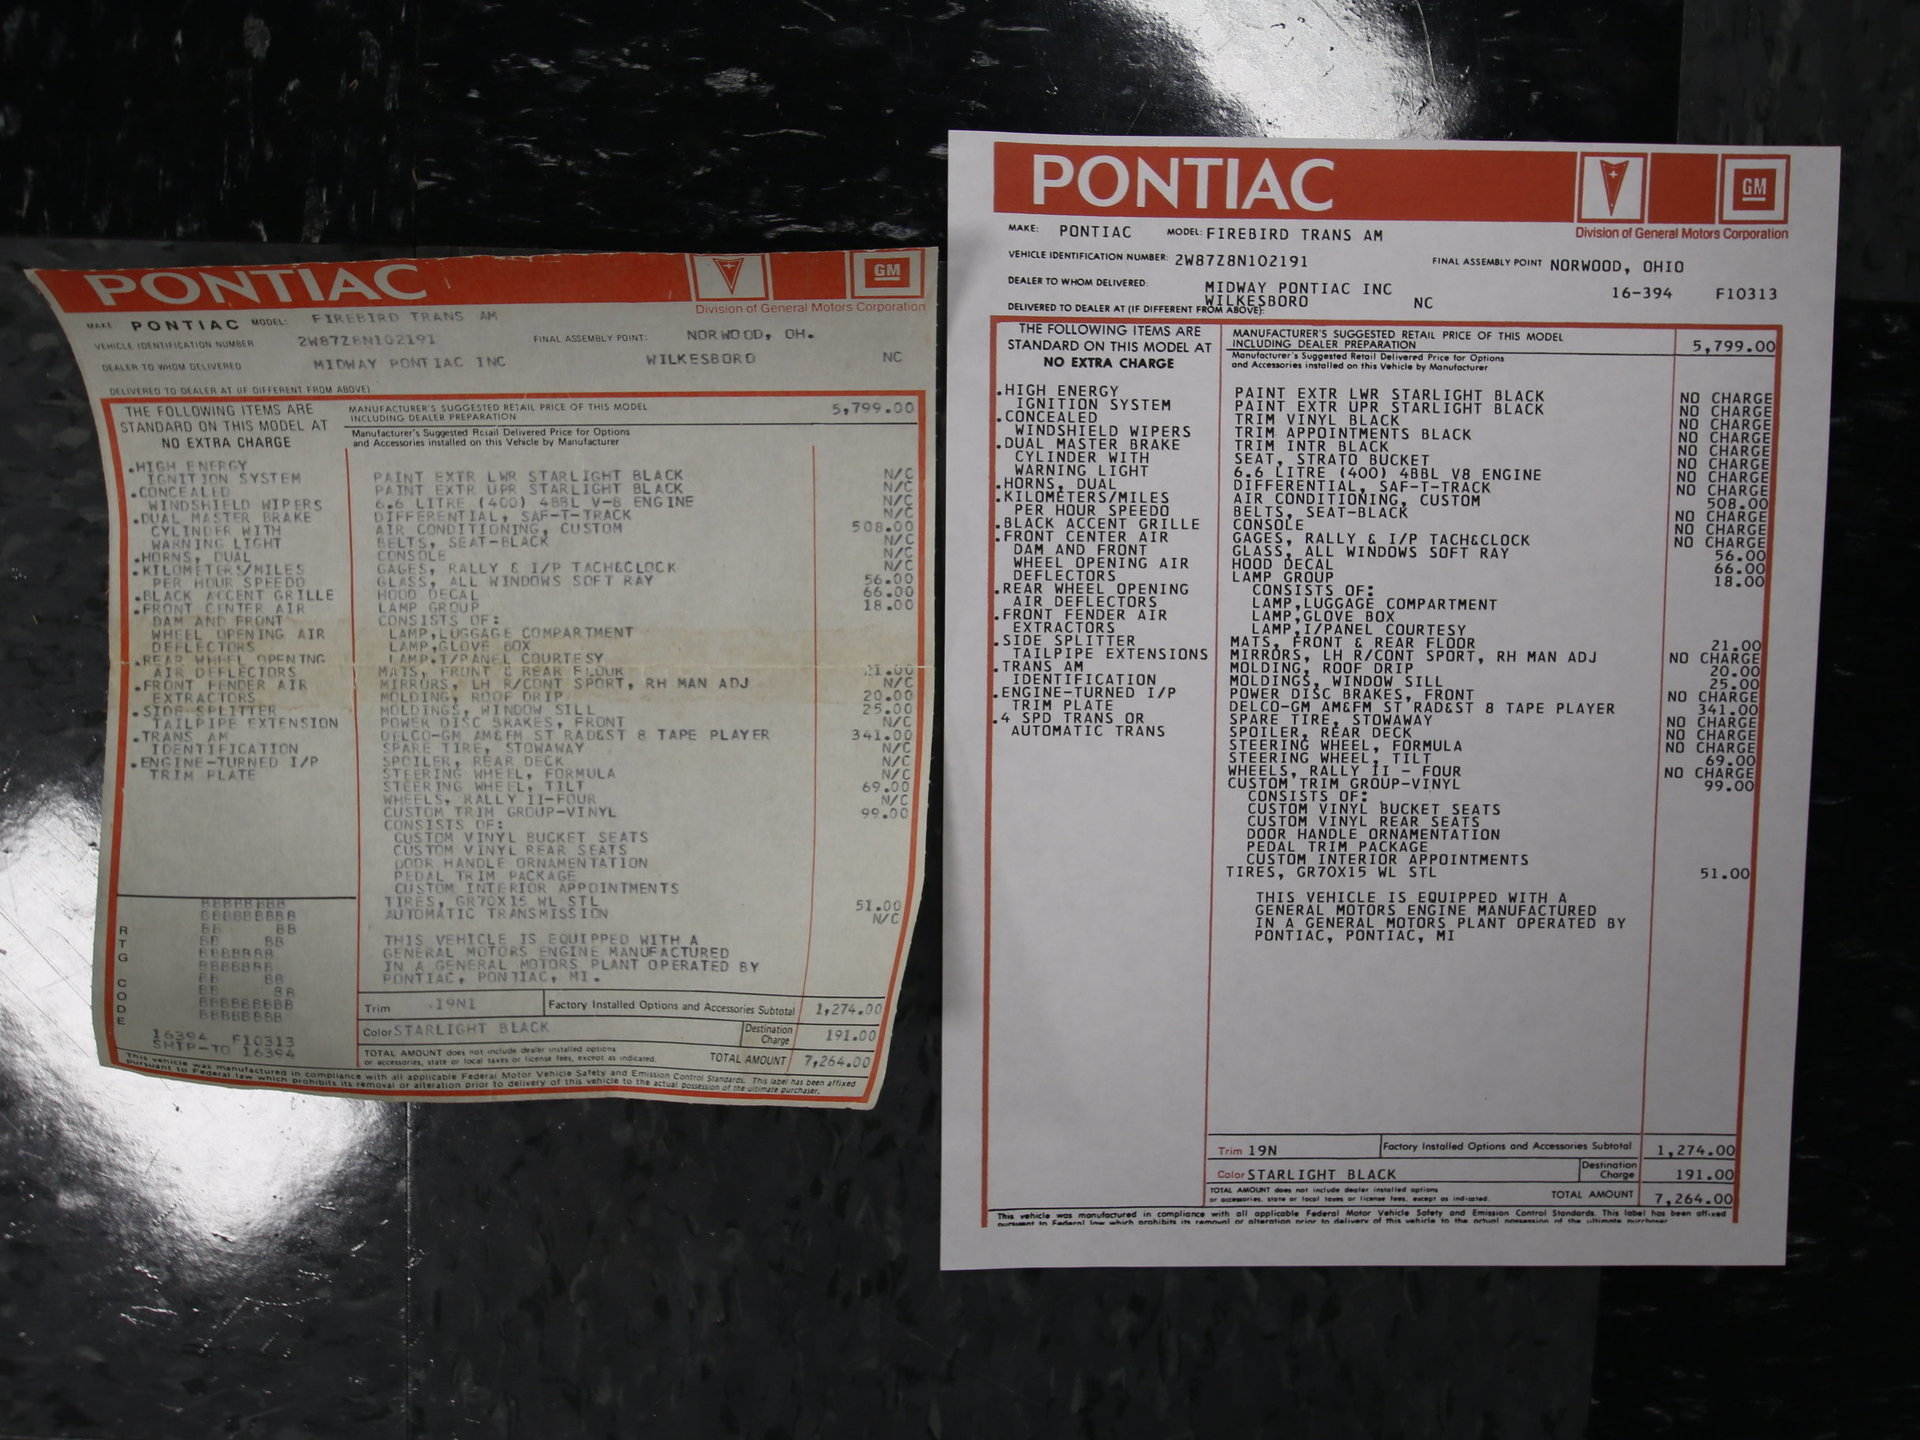 1978 Pontiac Streetside Classics The Nations Trusted Classic 77 Tran Am Ignition Wiring Diagram View 360